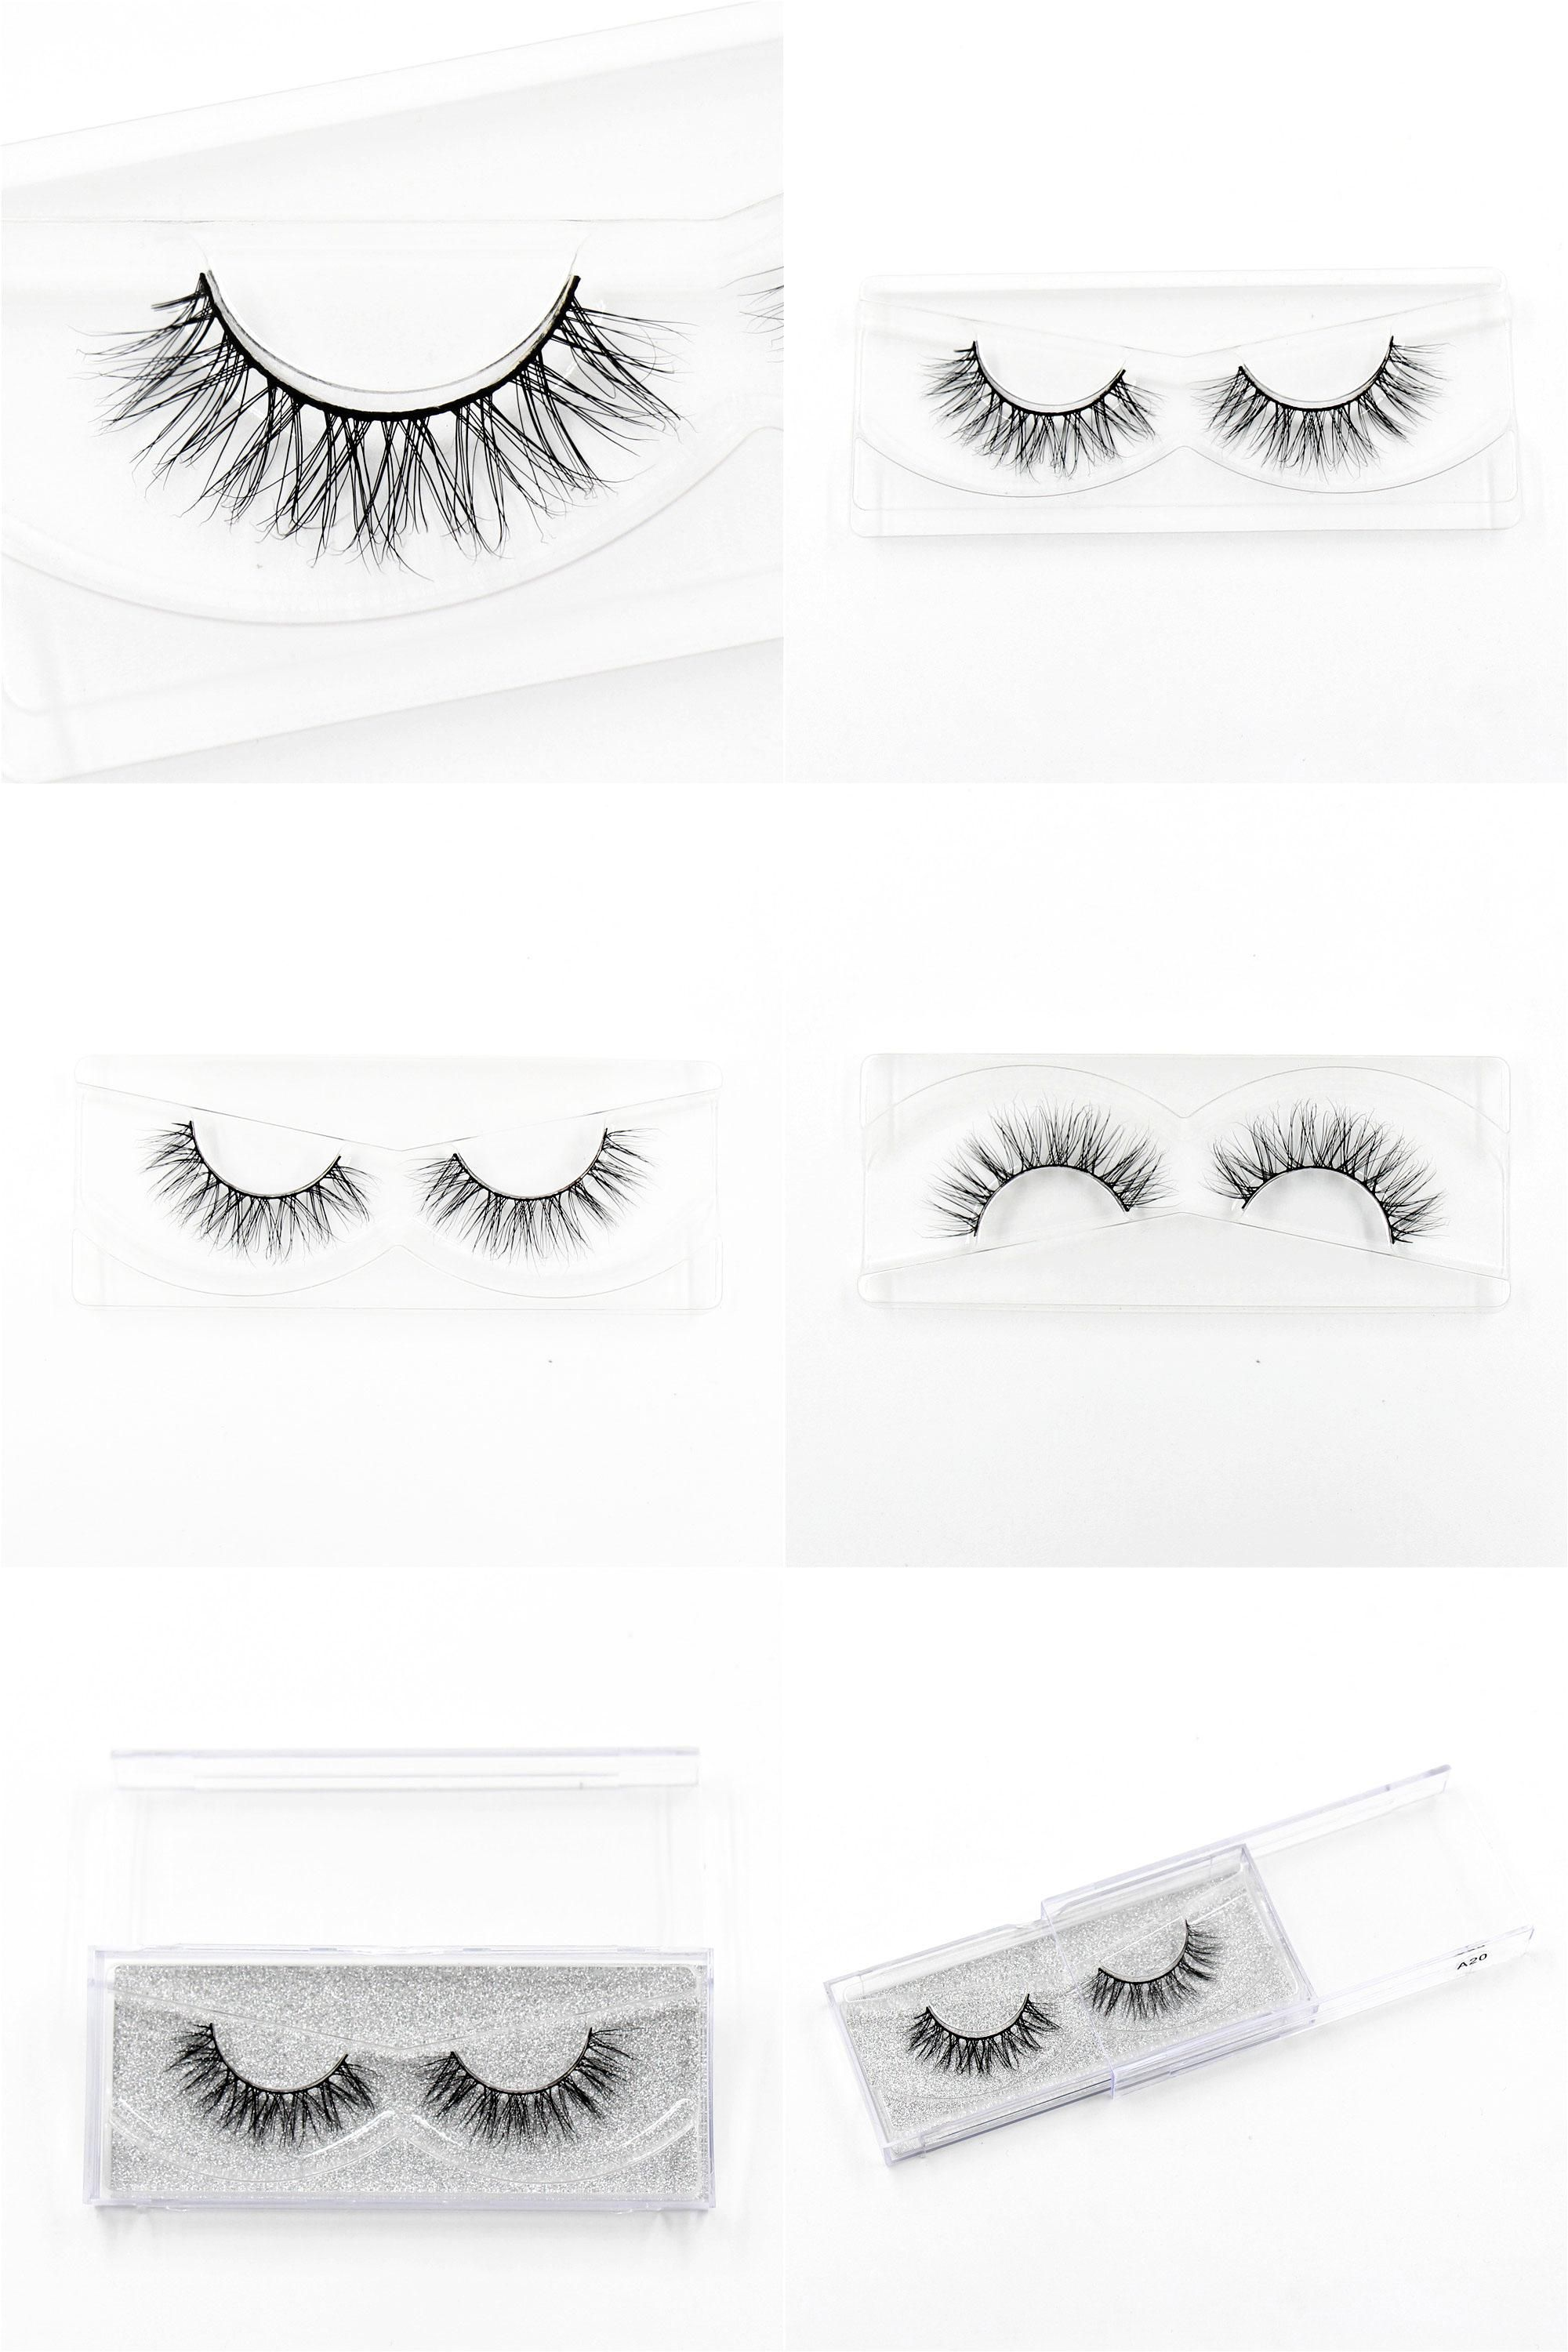 Visit To Buy Mink Lashes 3d False Eyelashes Natural Eyelashes 1